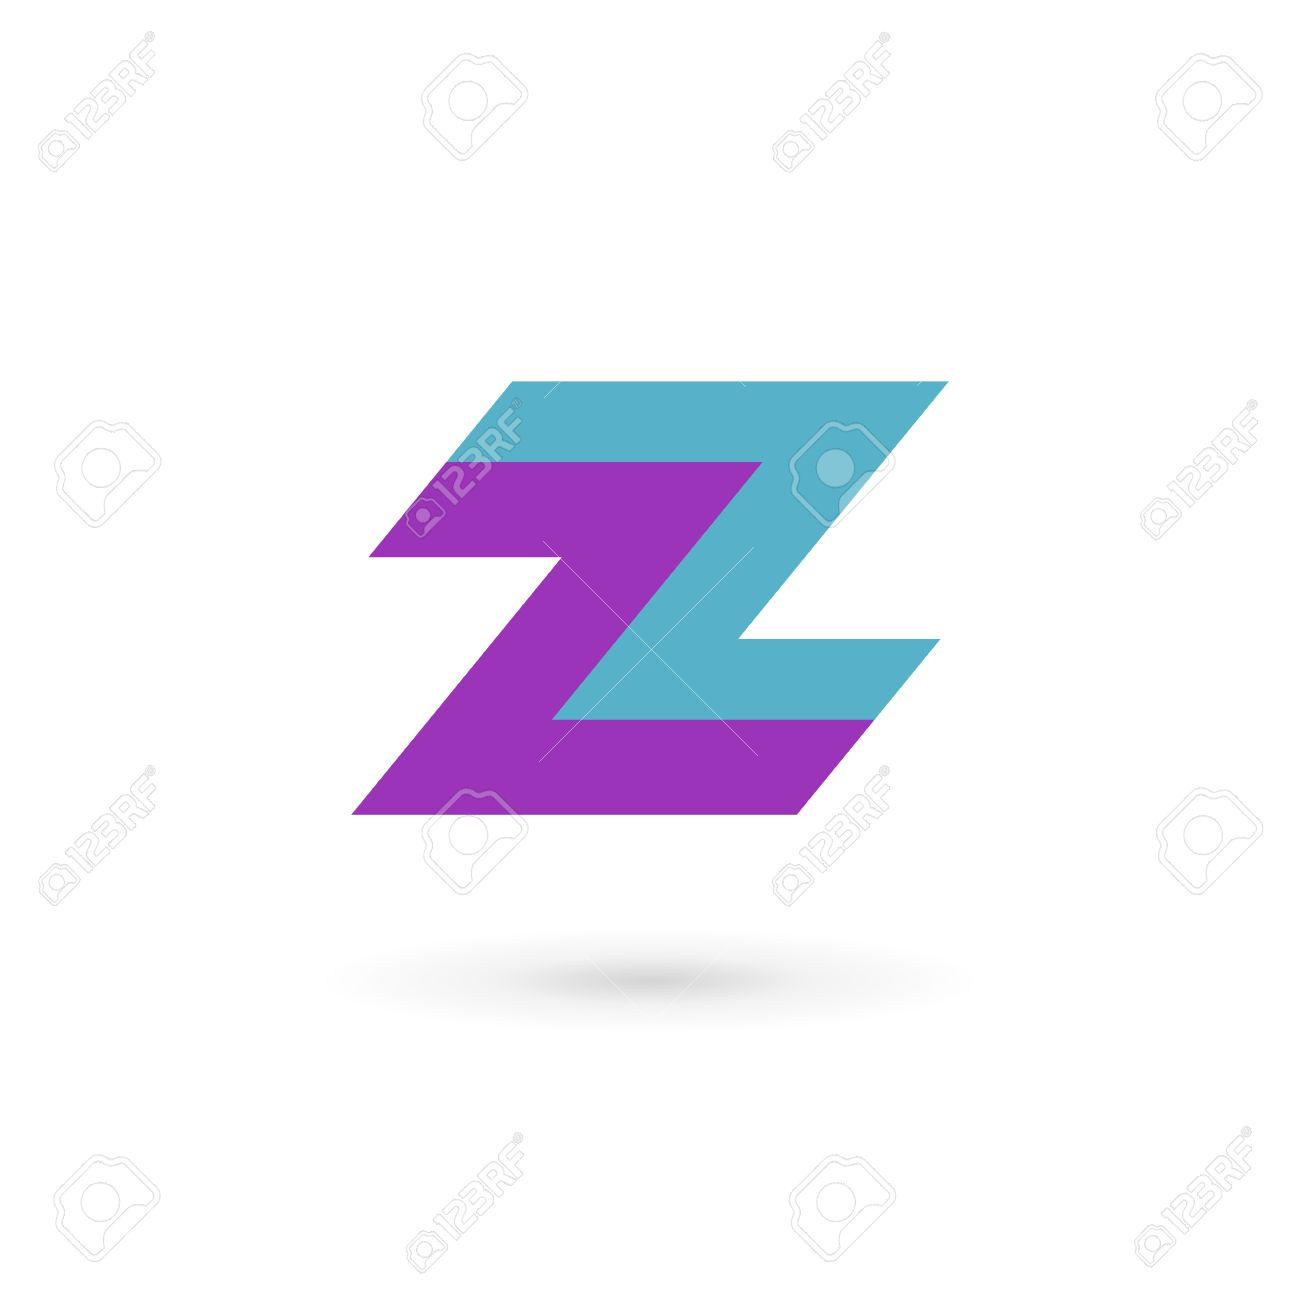 letter z logo icon design template elements royalty free cliparts